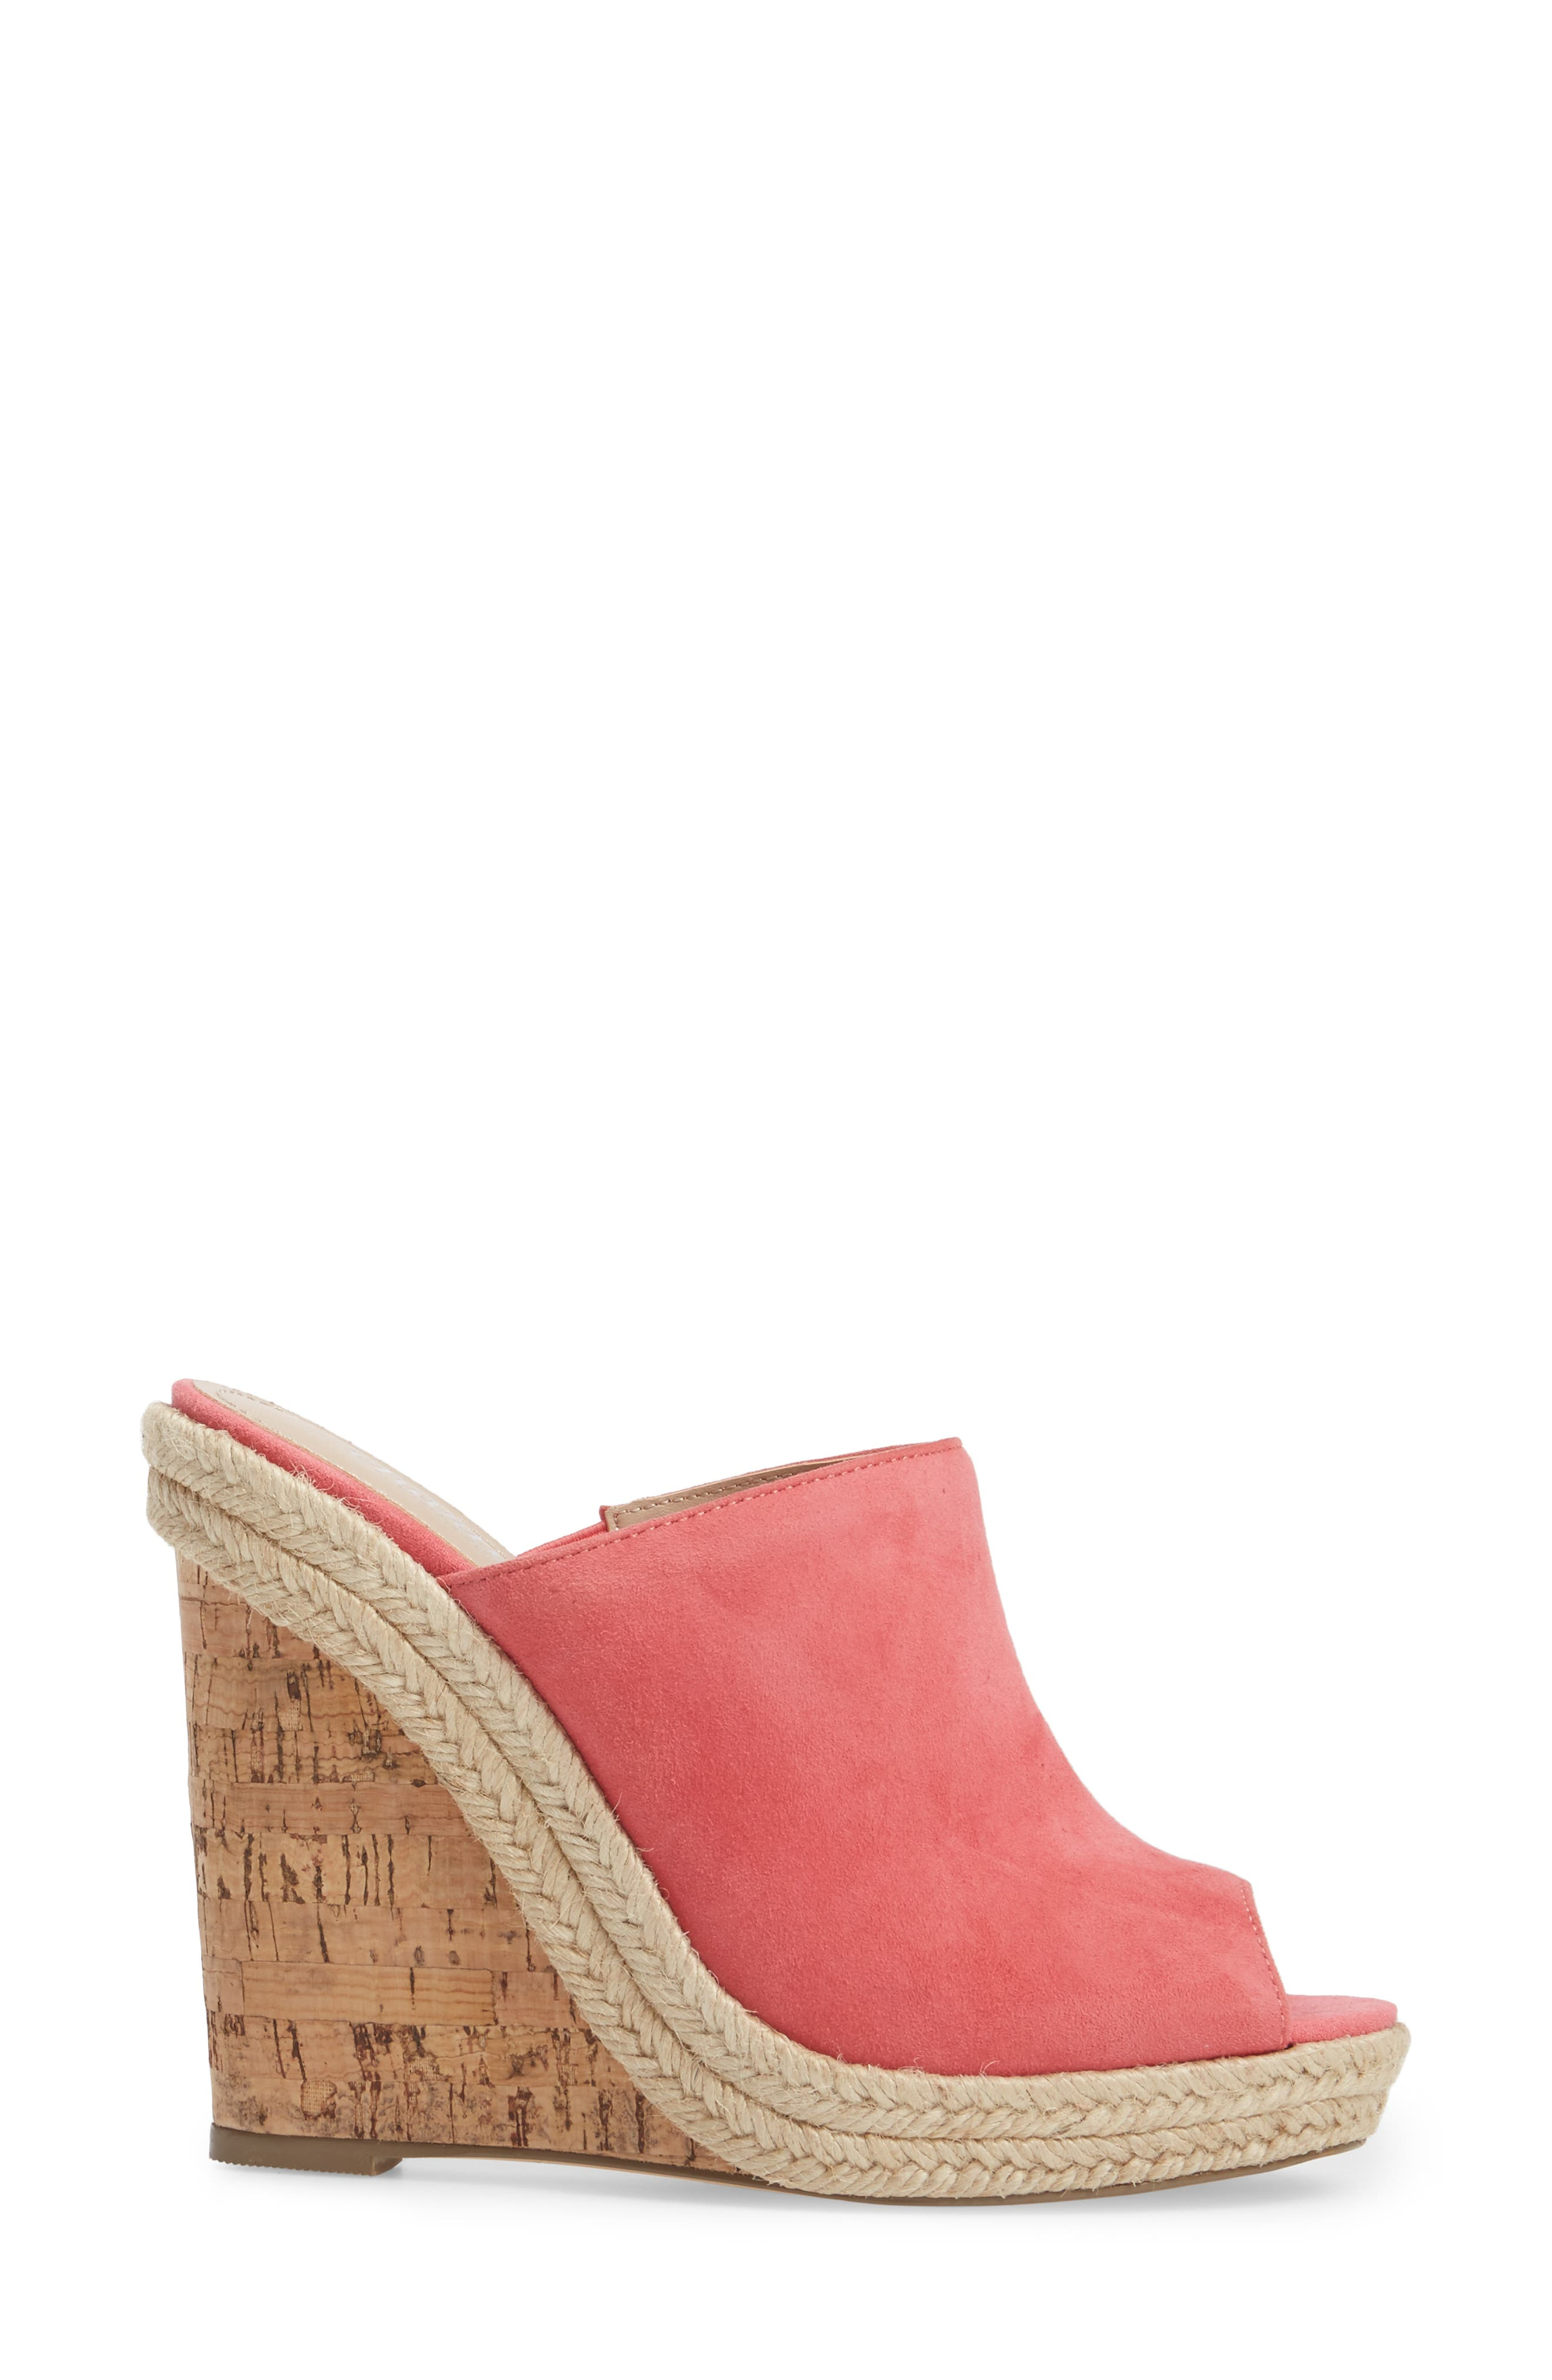 Balen Wedge,                             Alternate thumbnail 3, color,                             Coral Suede